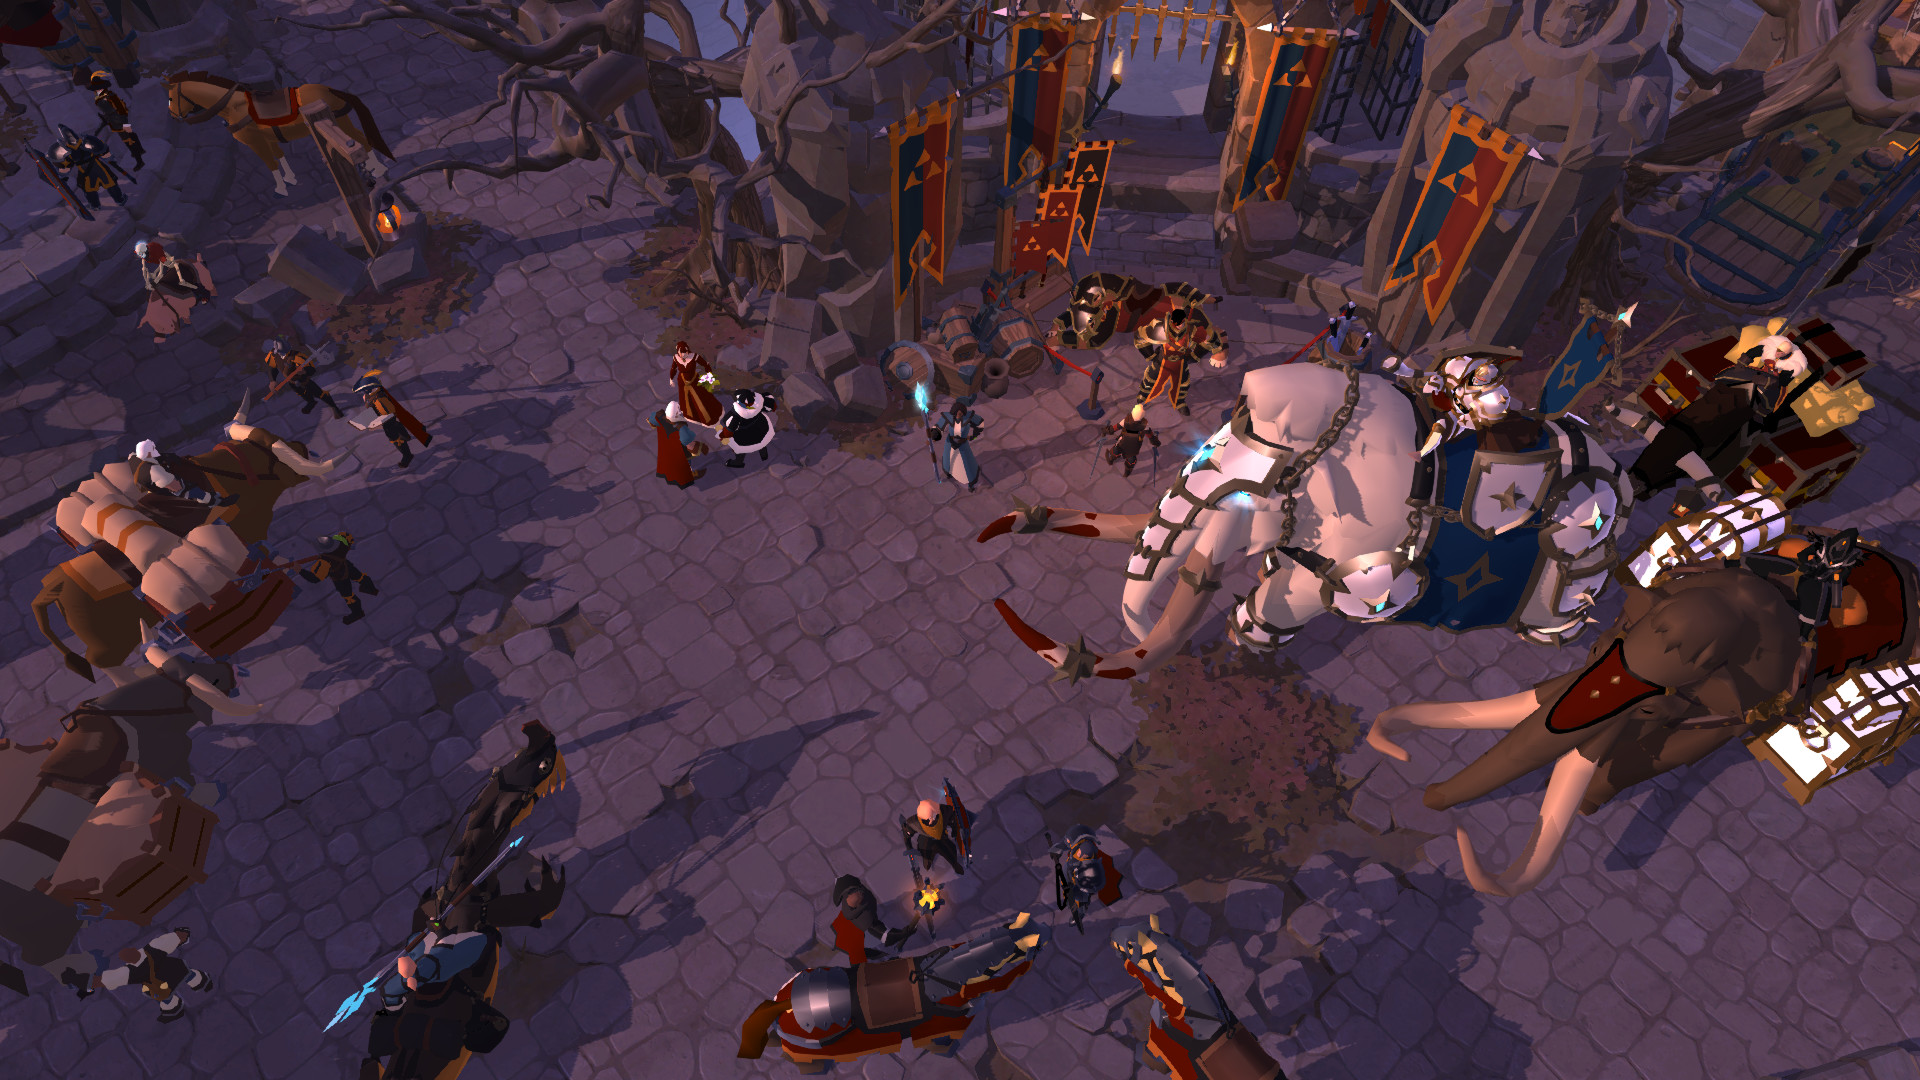 Find the best gaming PC for Albion Online